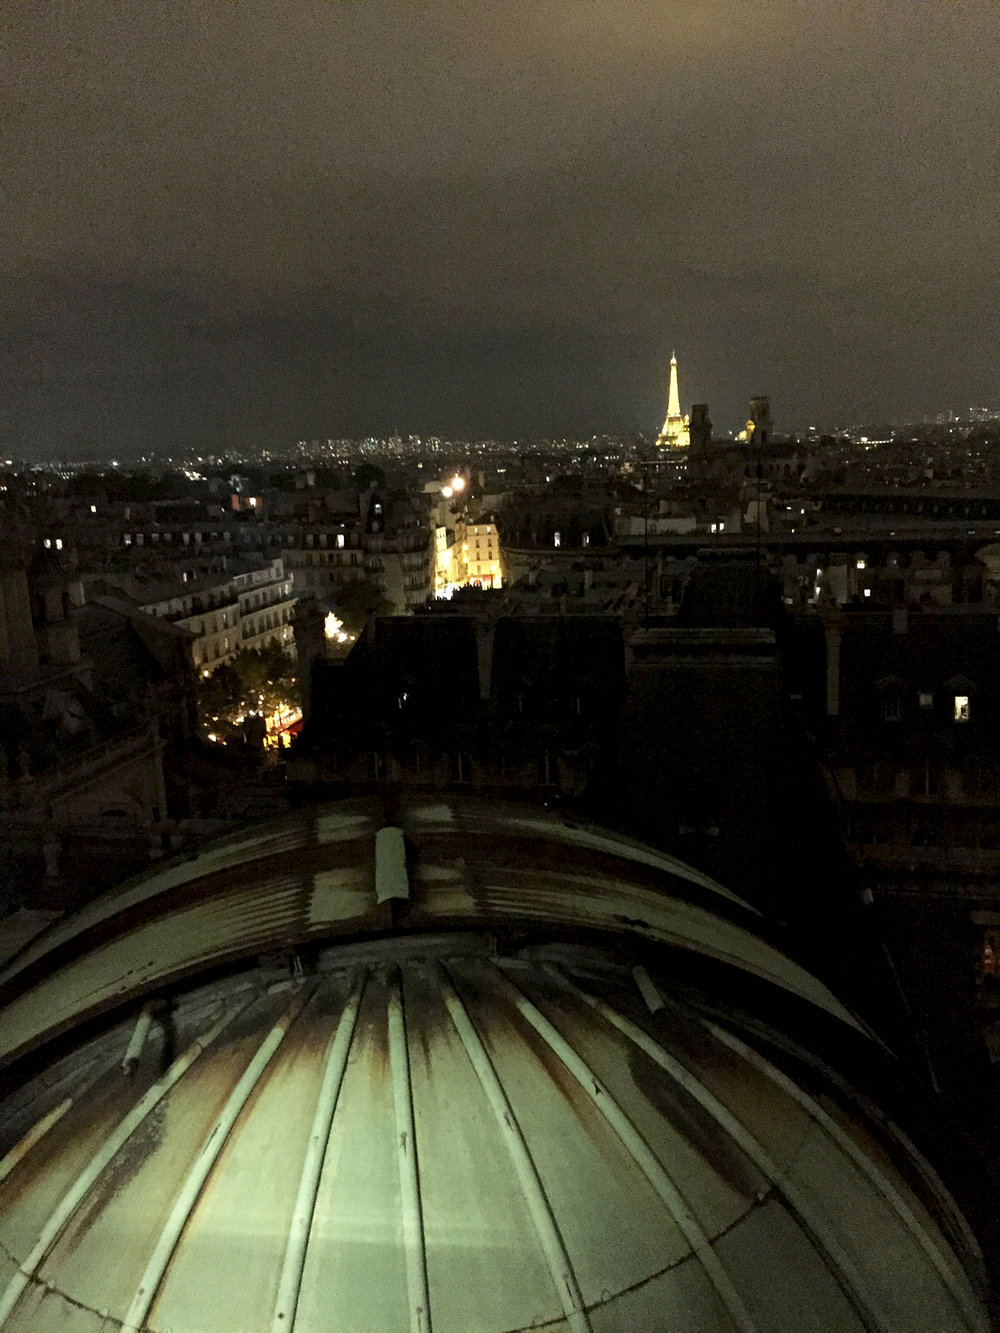 The lower cupola, Saint-Sulpice, and the Eiffel Tower.